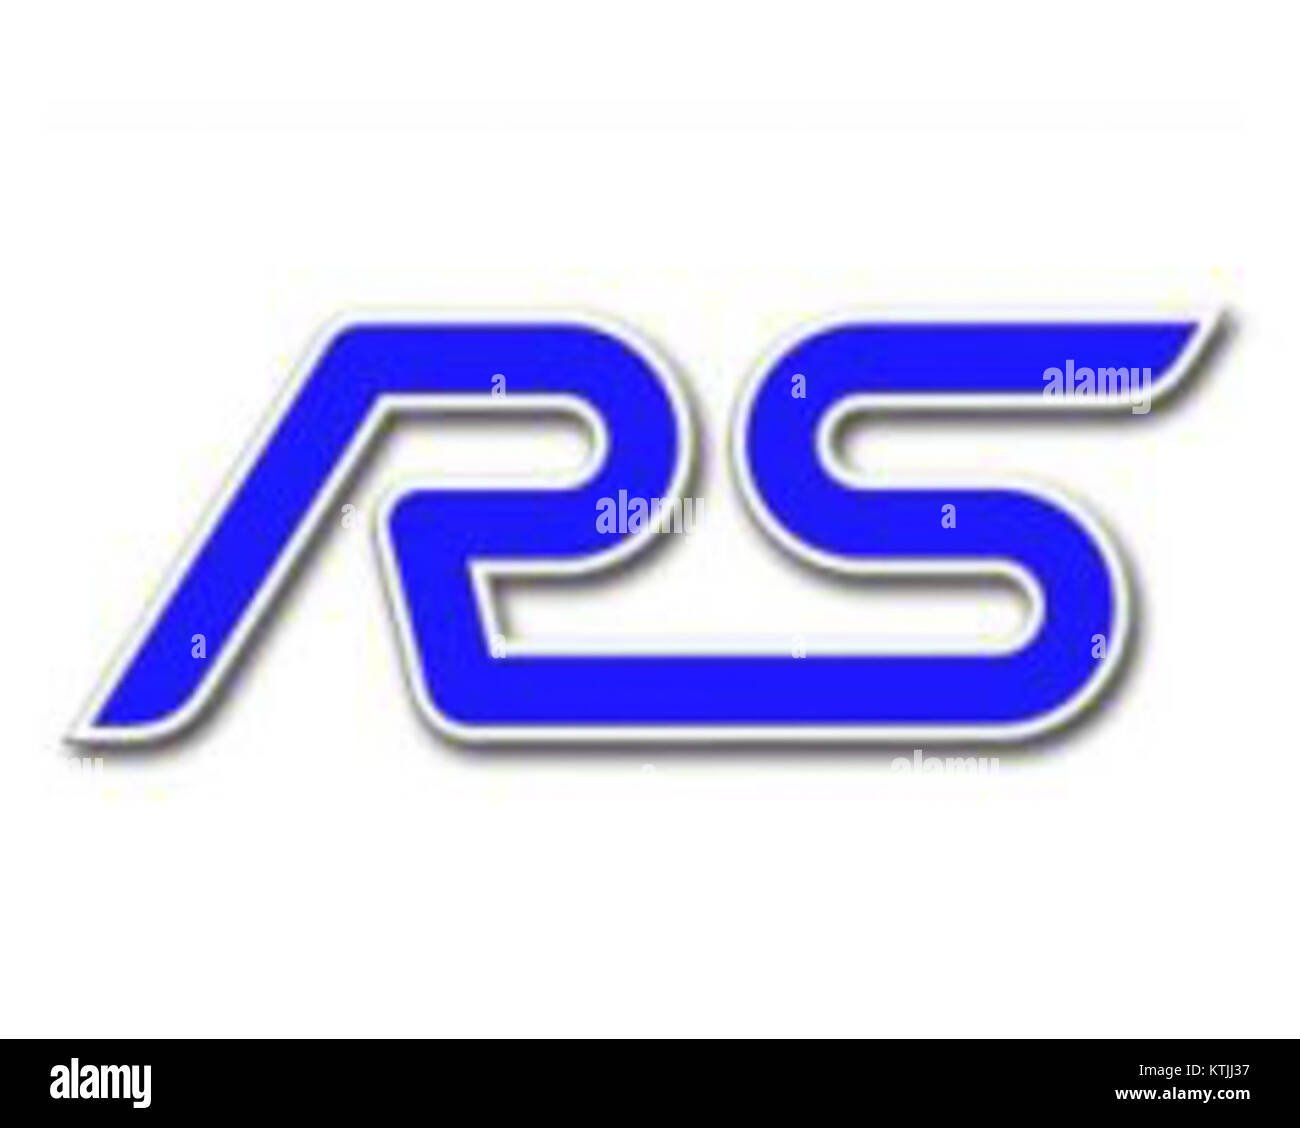 Ford rs logo stock photo royalty free image 170054395 alamy ford rs logo buycottarizona Image collections